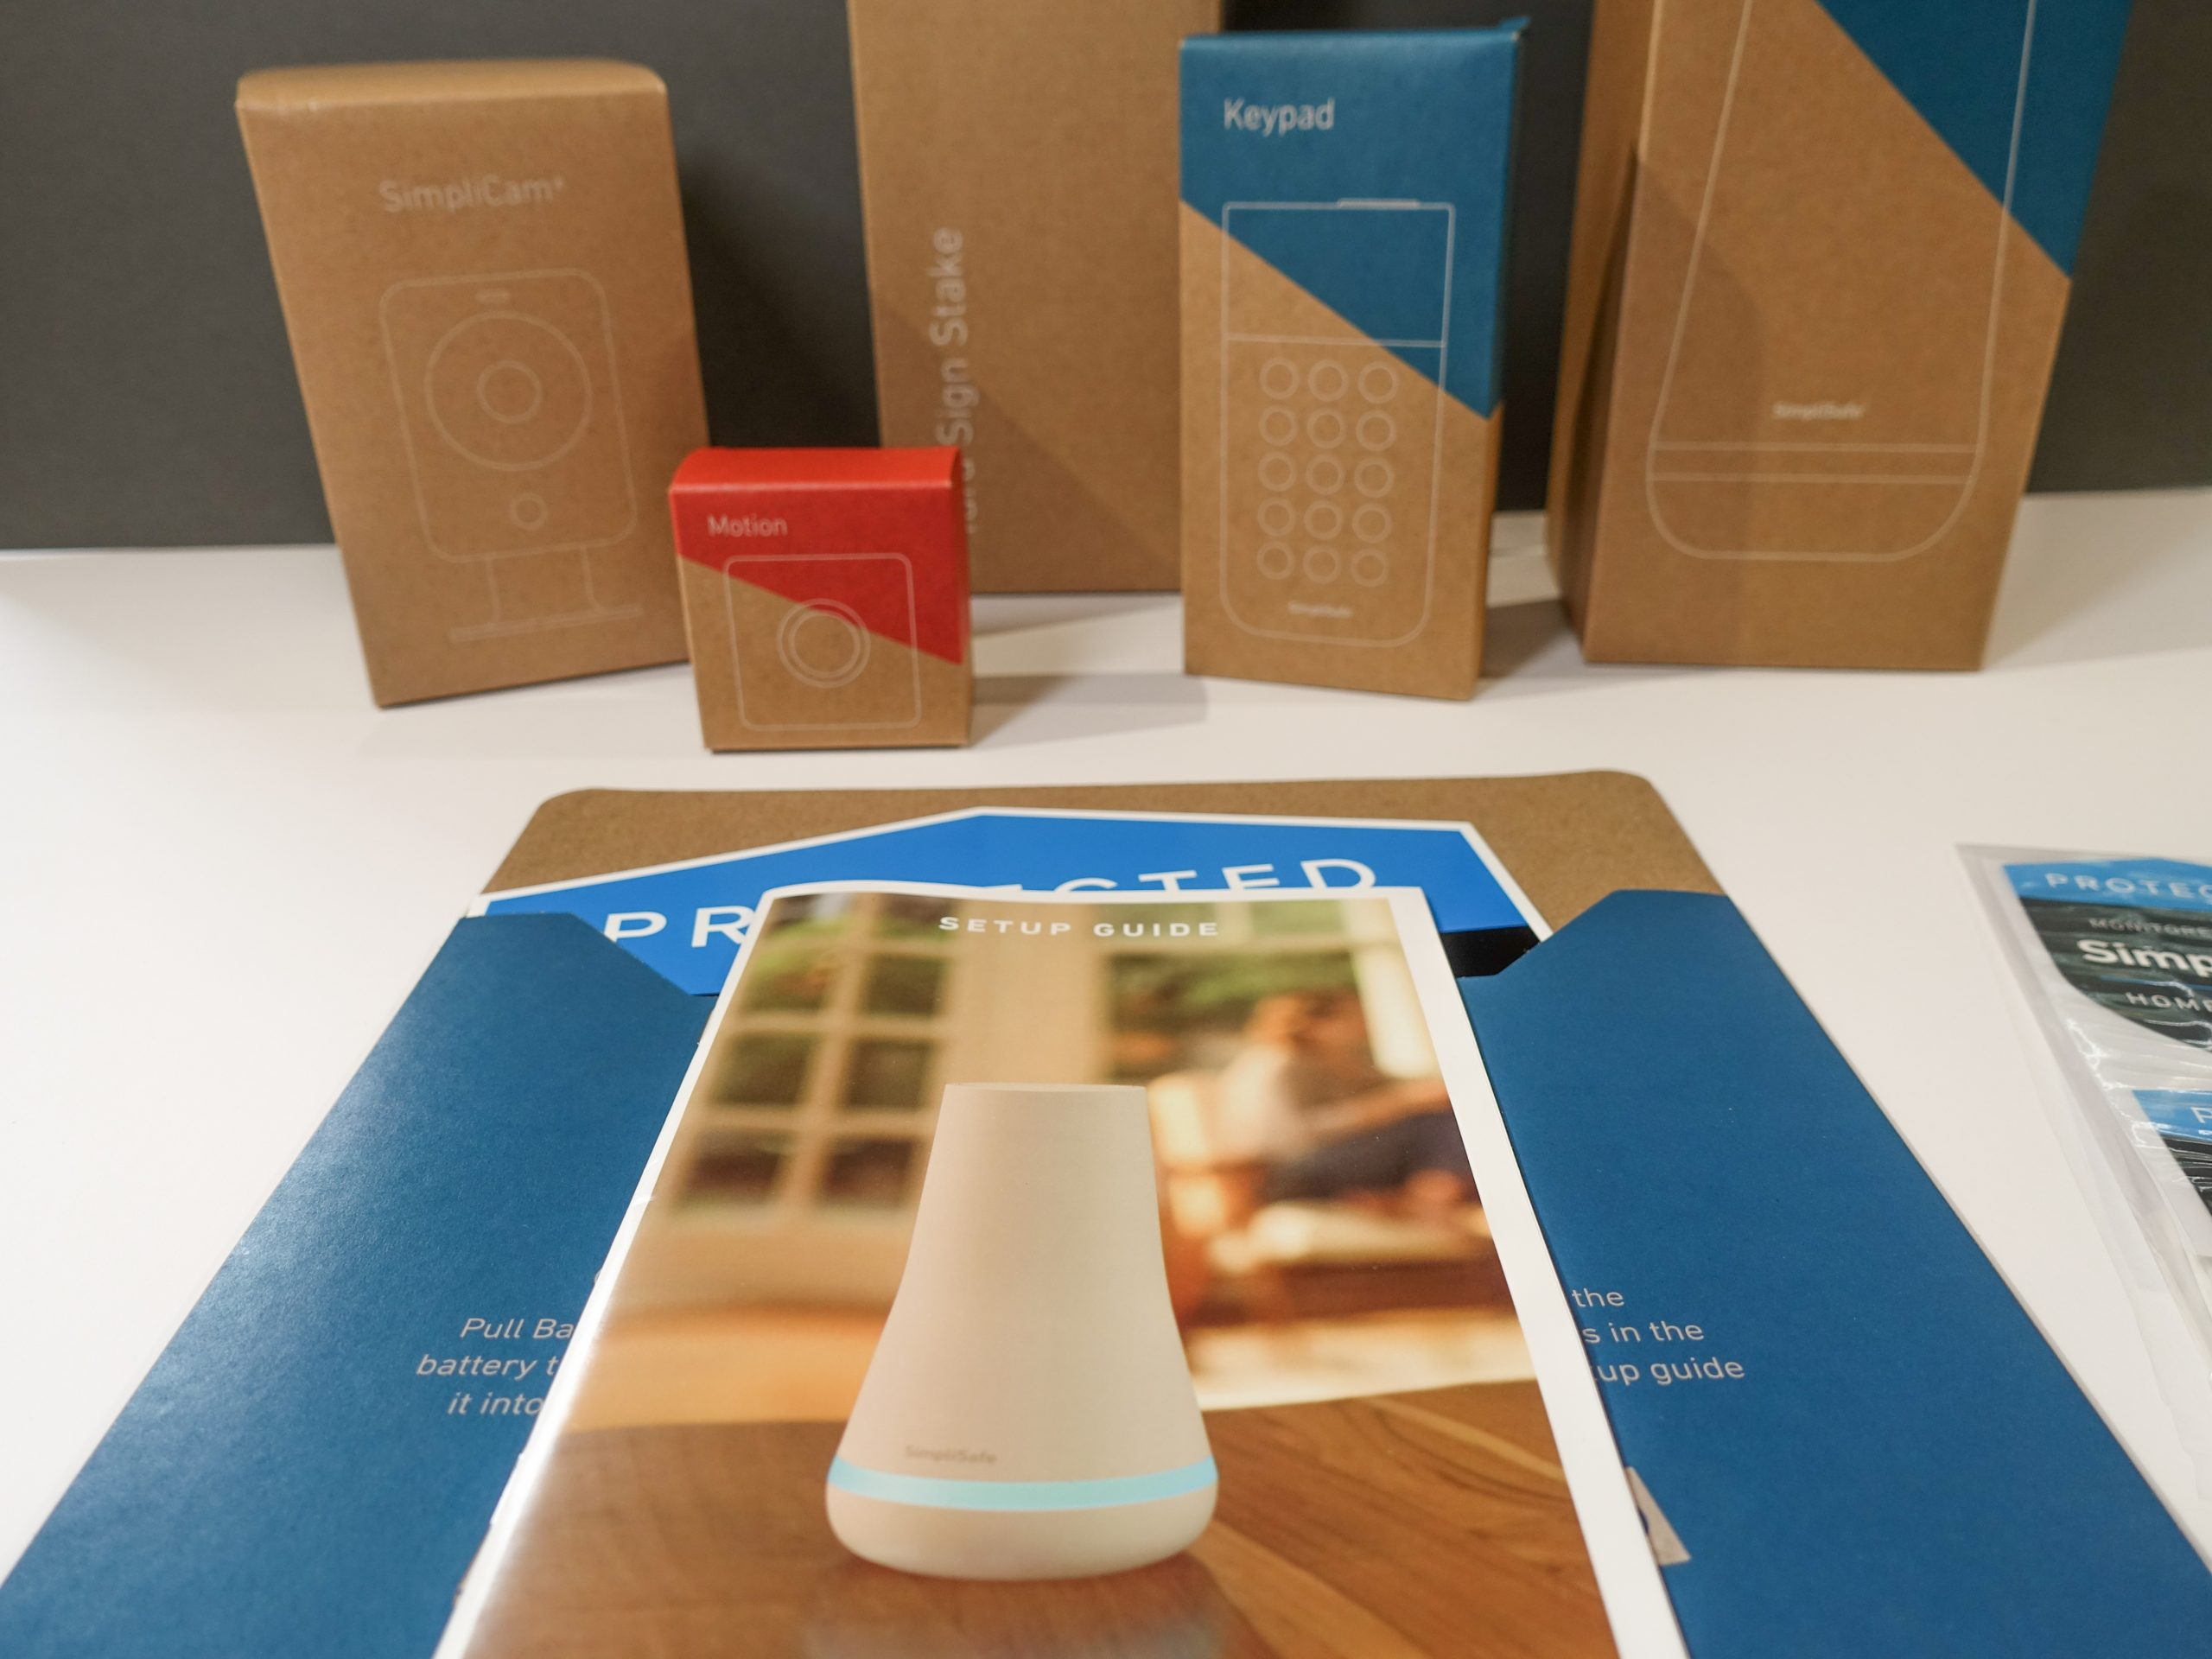 What's in the box 3 (SimpliSafe Kit)